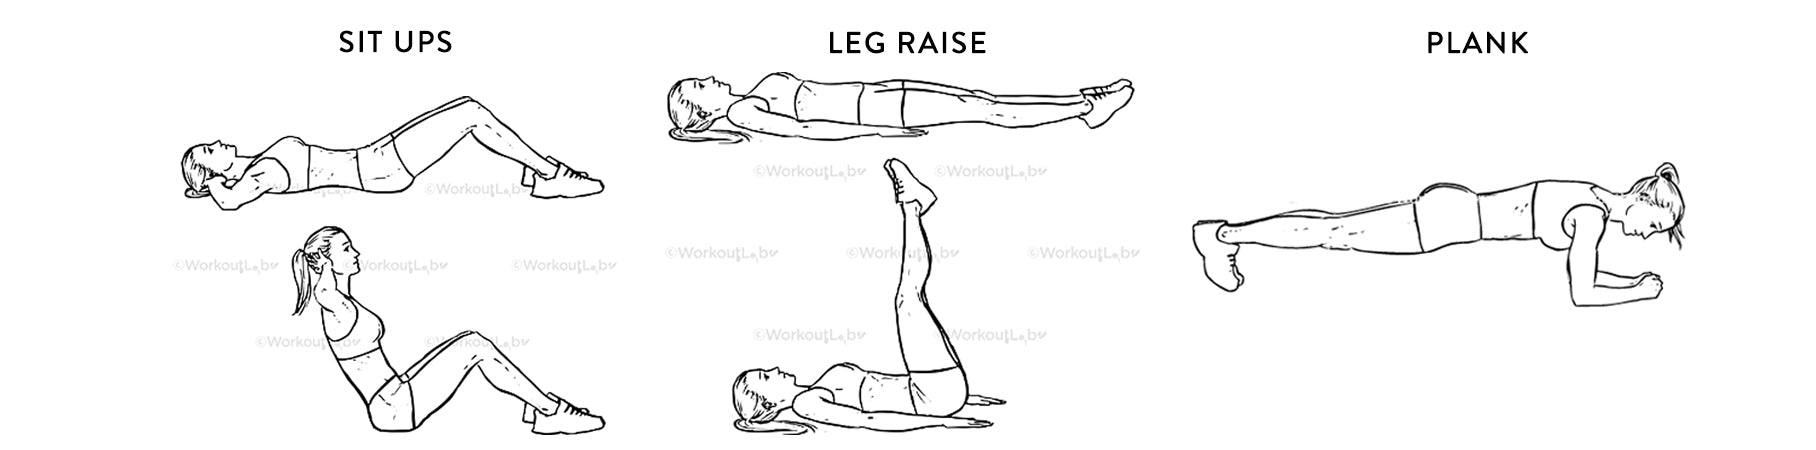 Bodyweight exercises for horse rider fitness home workouts for equestrian fitness core exercises for equestrian fitness core exercises for horse rider fitness sit ups leg raises plank workout labs